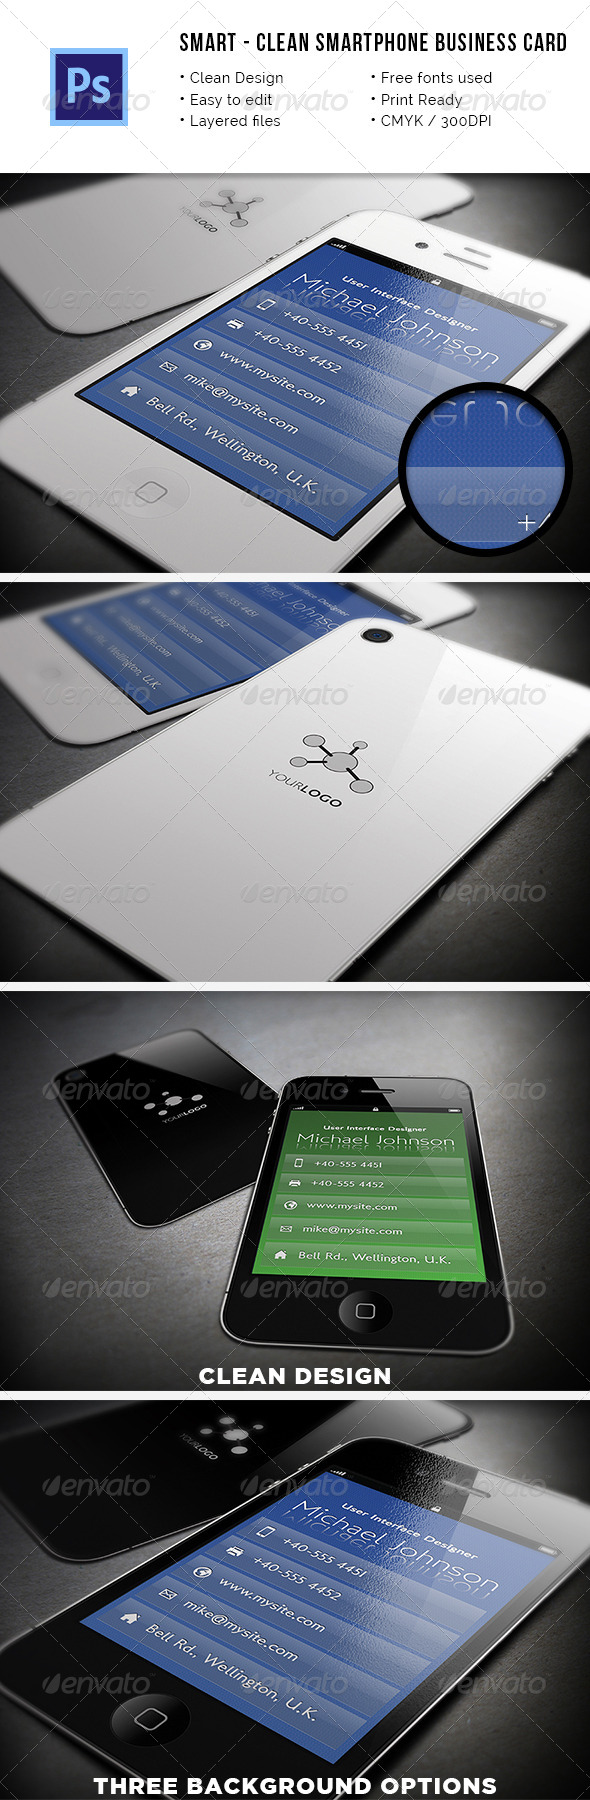 Smart Clean Smartphone Business Card